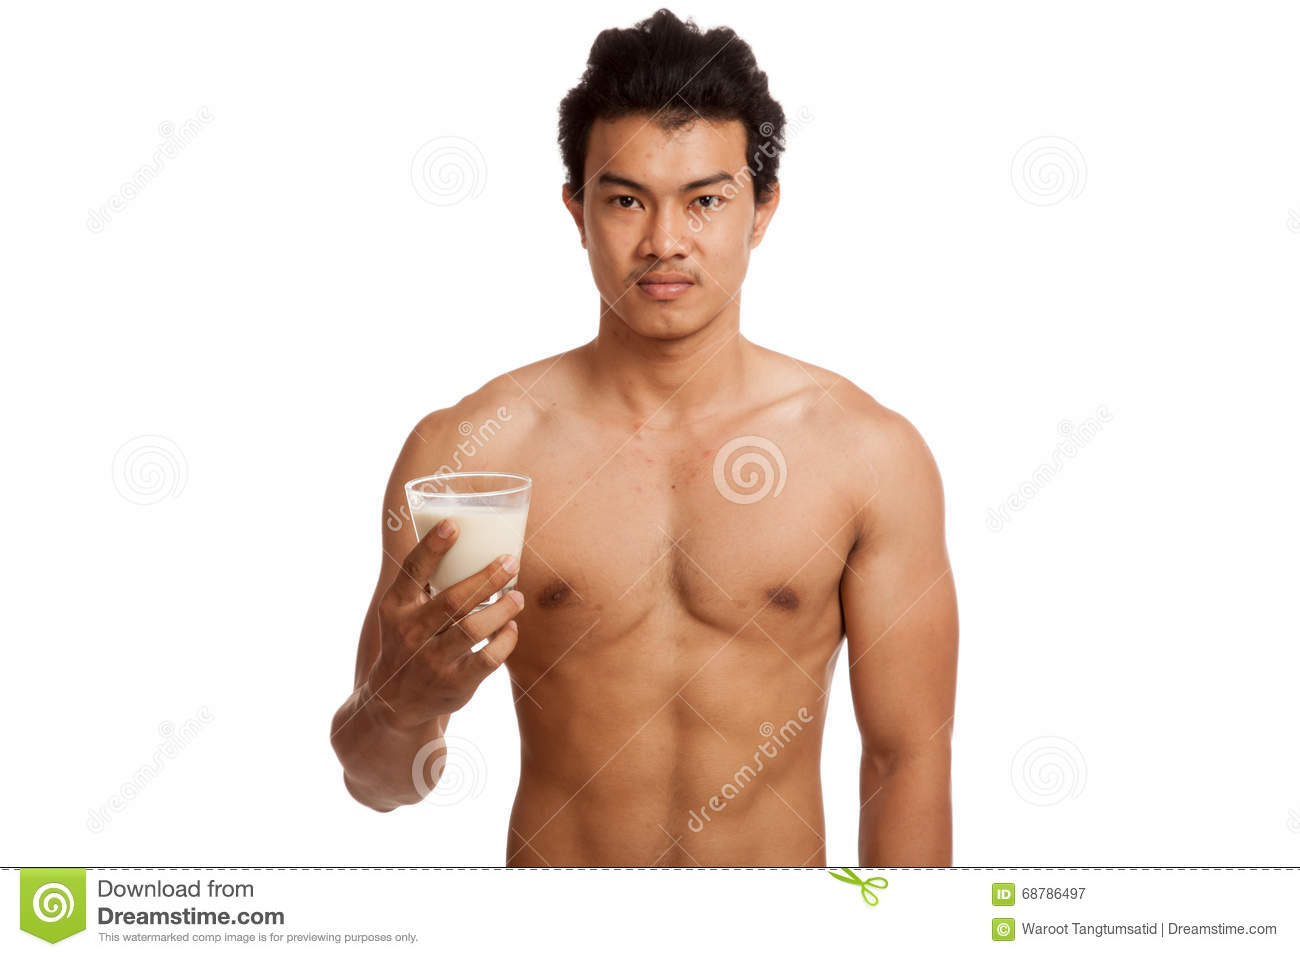 Muscular guy pours milk cums gay they took 6